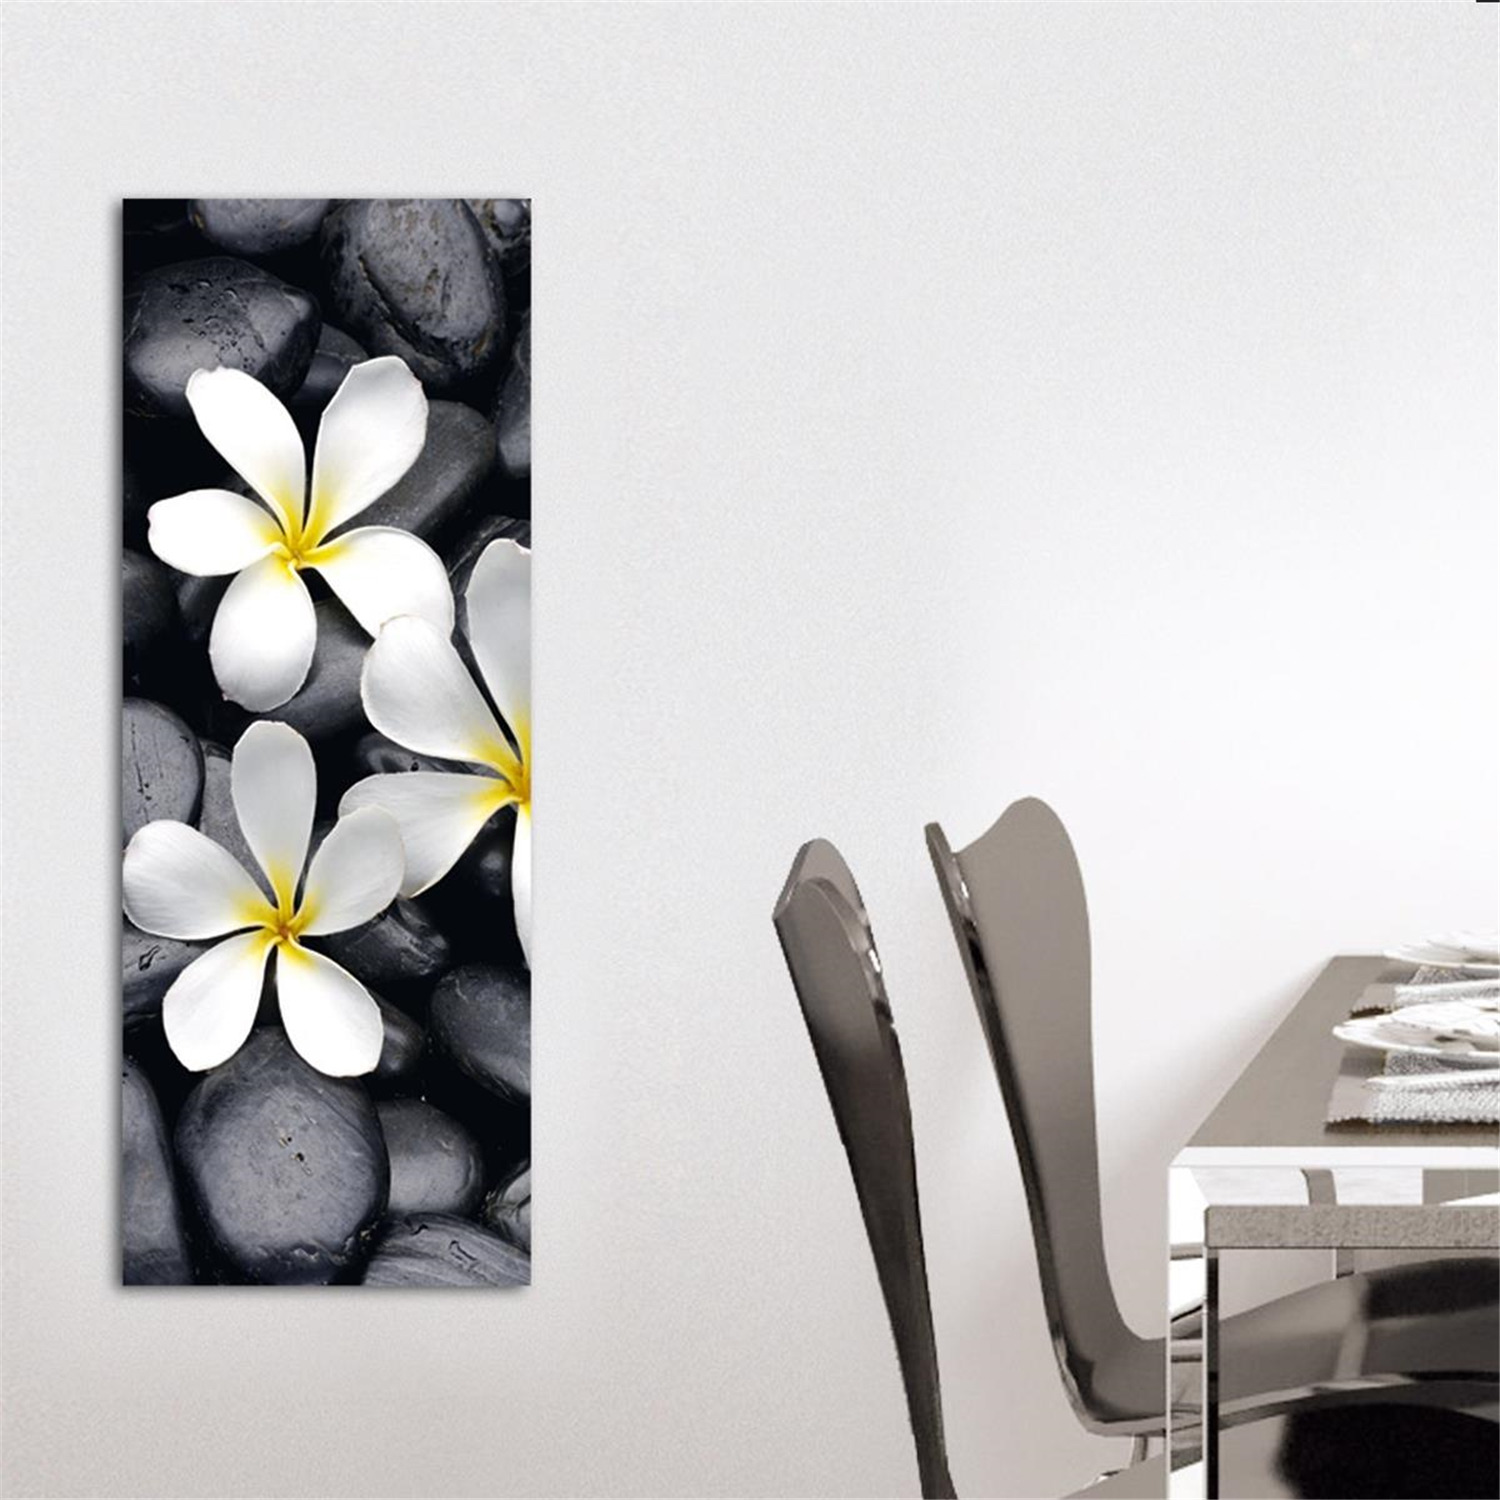 Deco Glass Wall Decor Art On Glass White Splendour